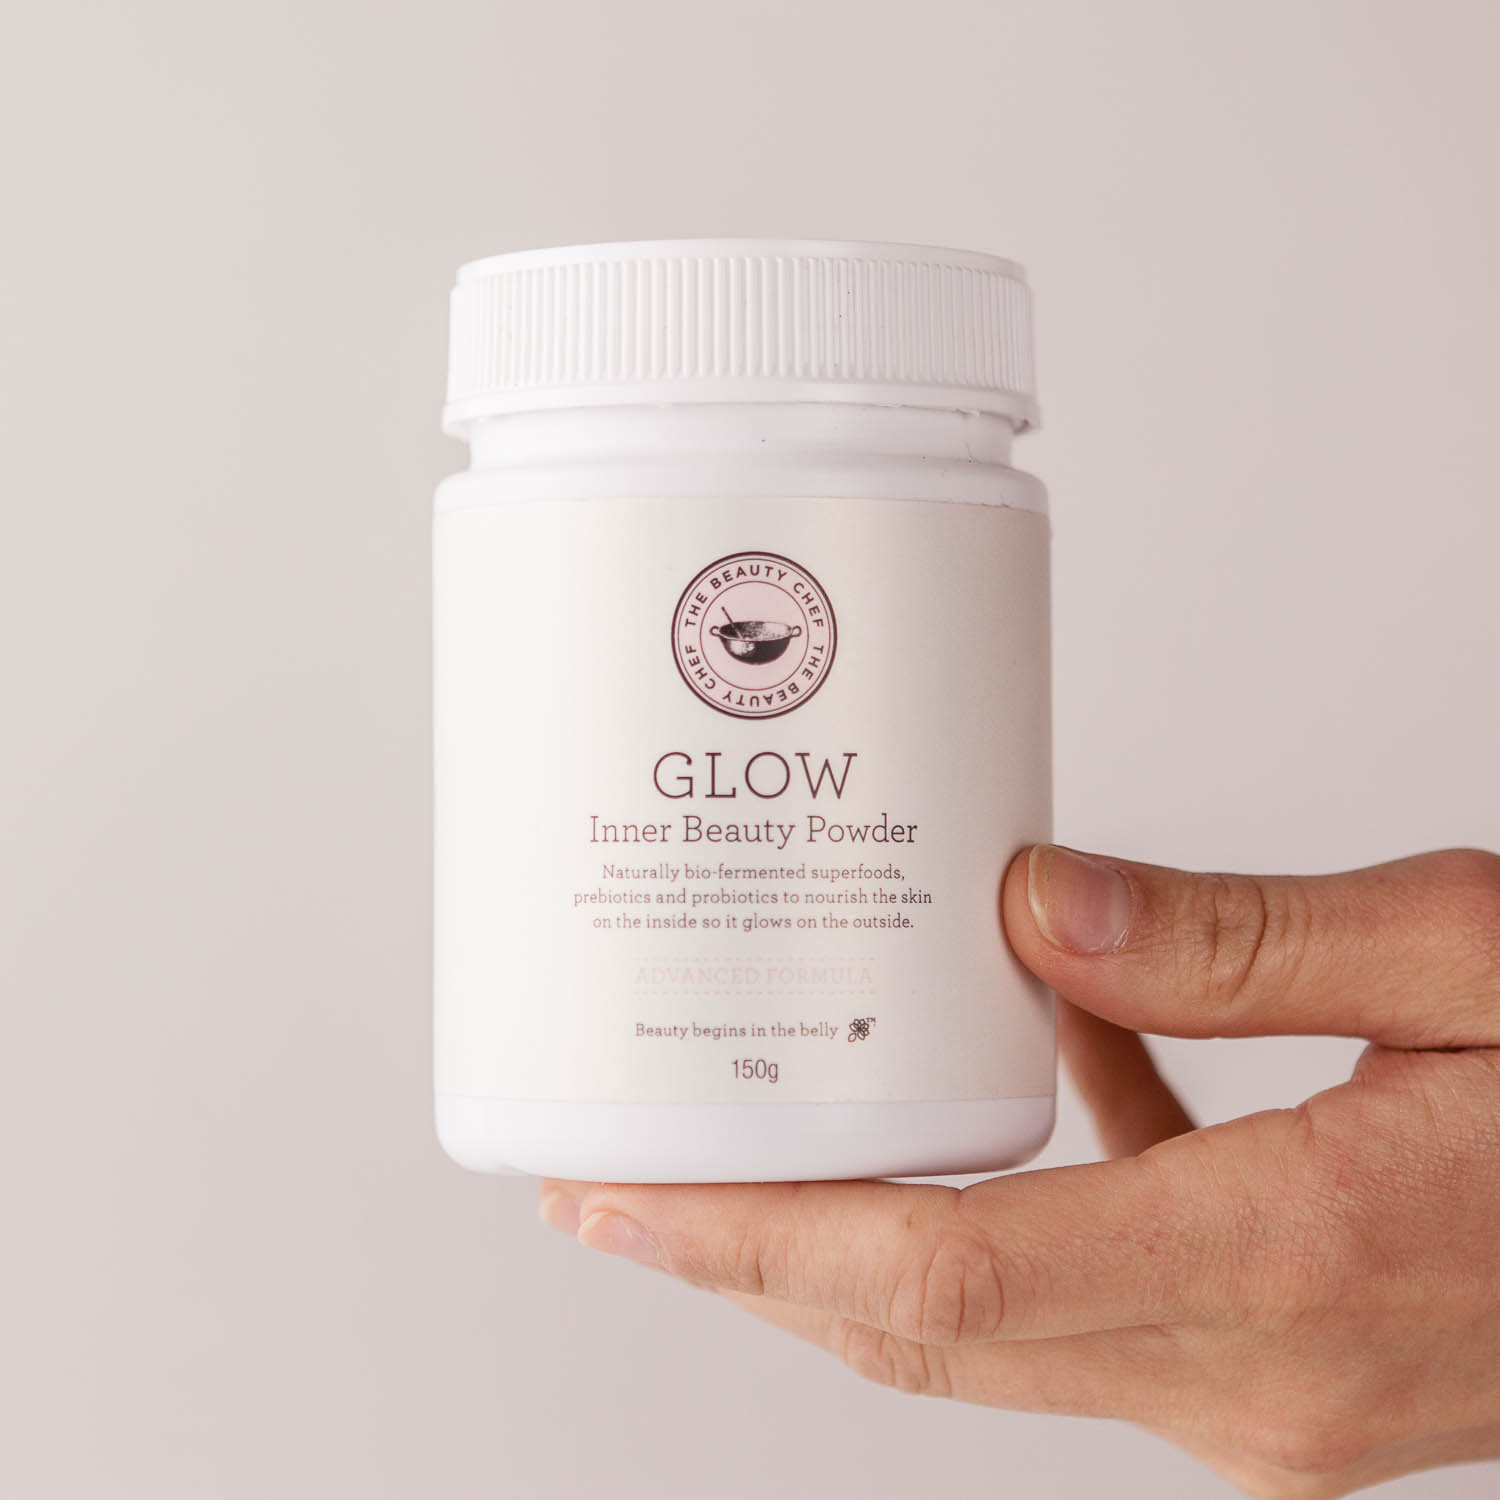 RELATED Discover our review of Glow Inner Beauty powder by The Beauty Chef.